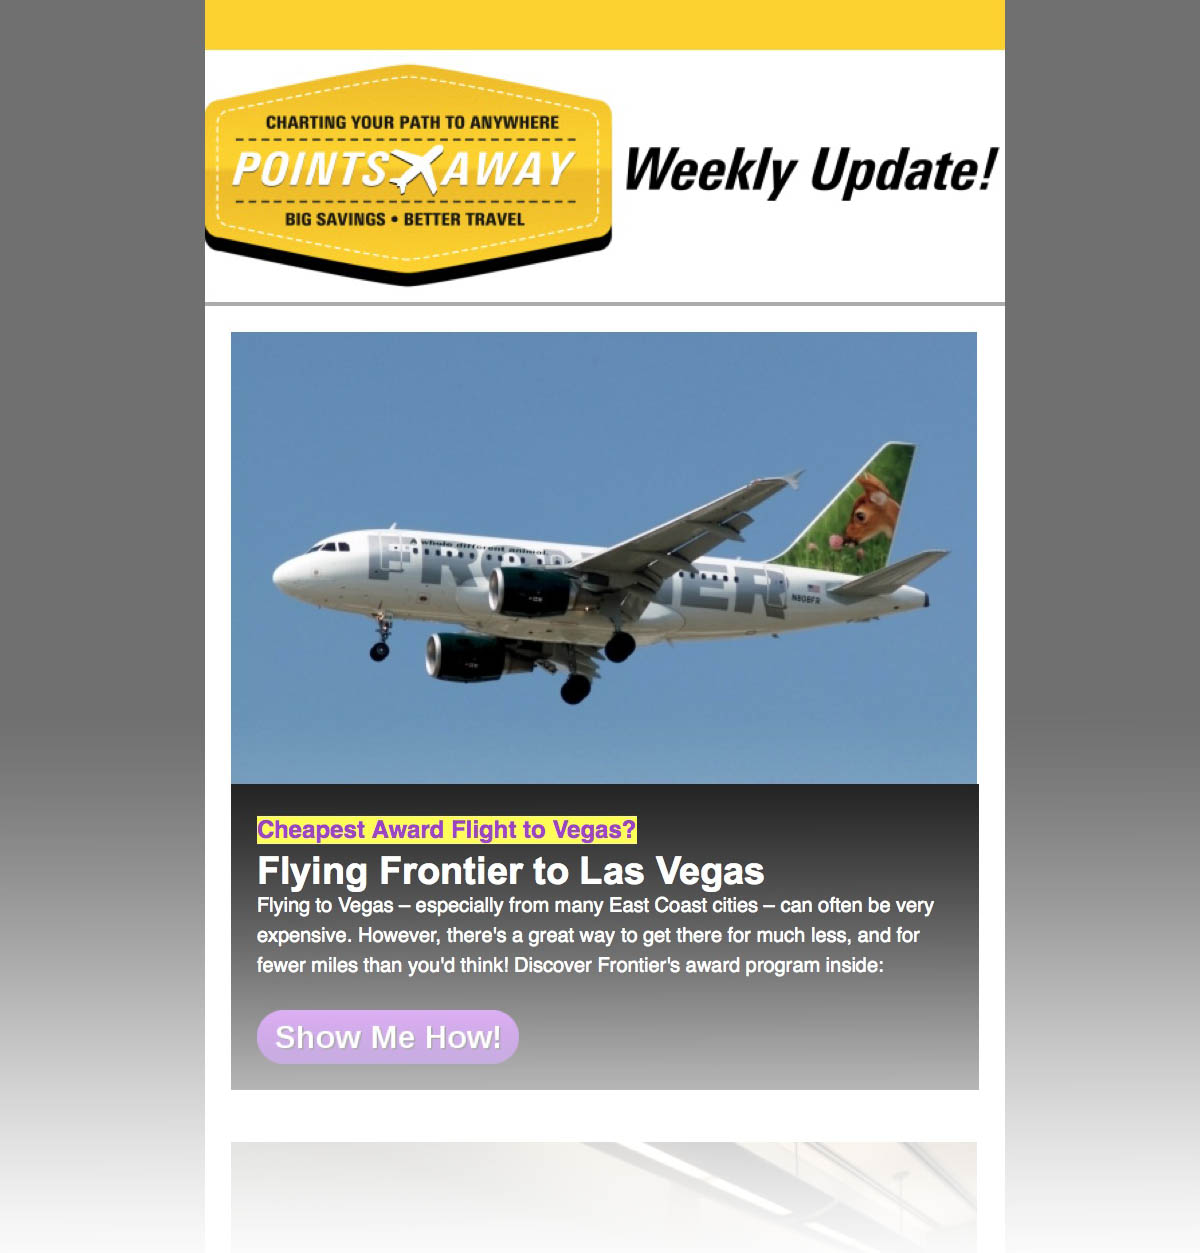 PointsAway Weekly Newsletter